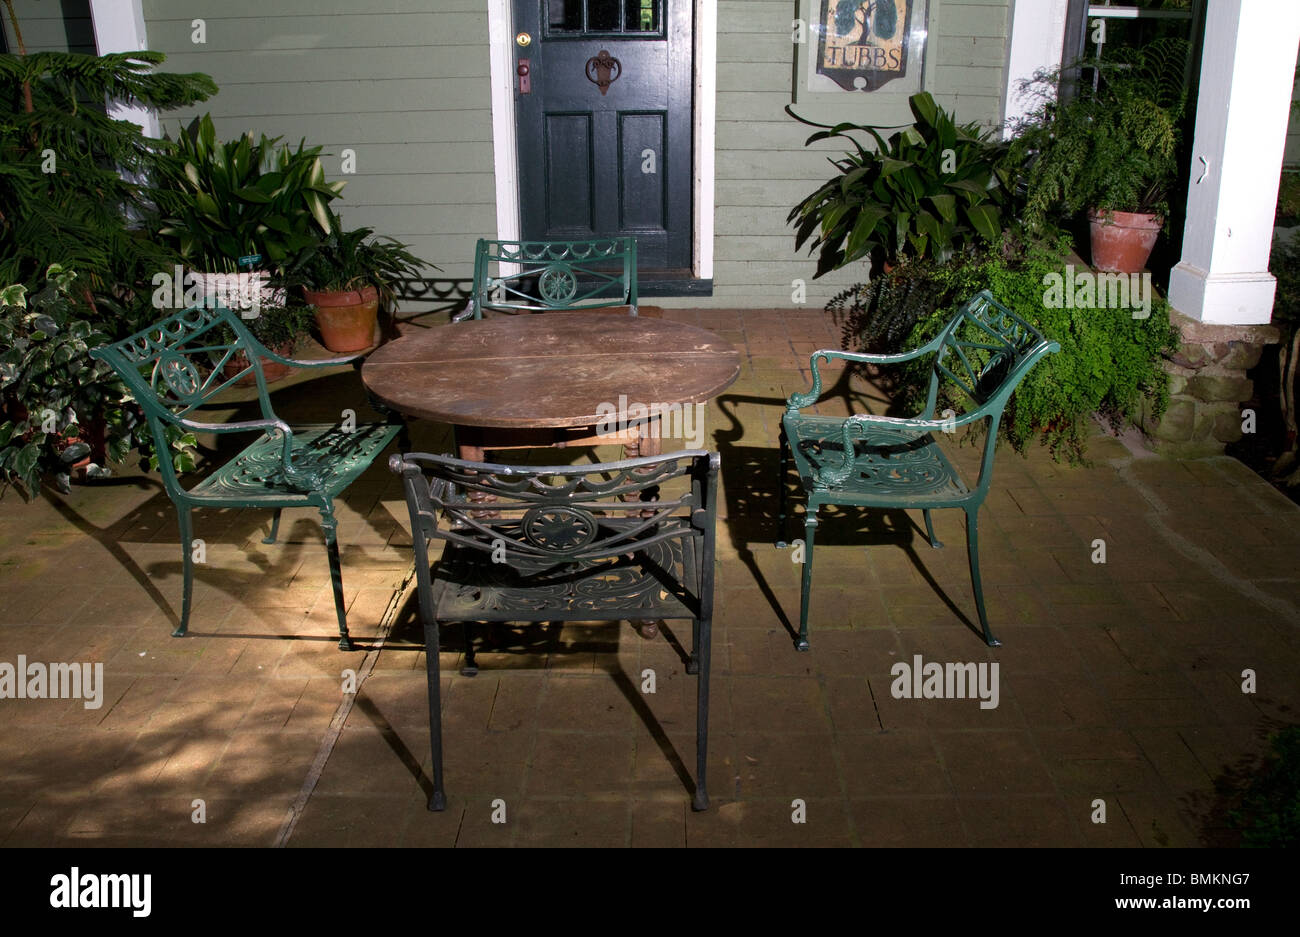 On the veranda four wrought iron chairs, a table and potted plants ...